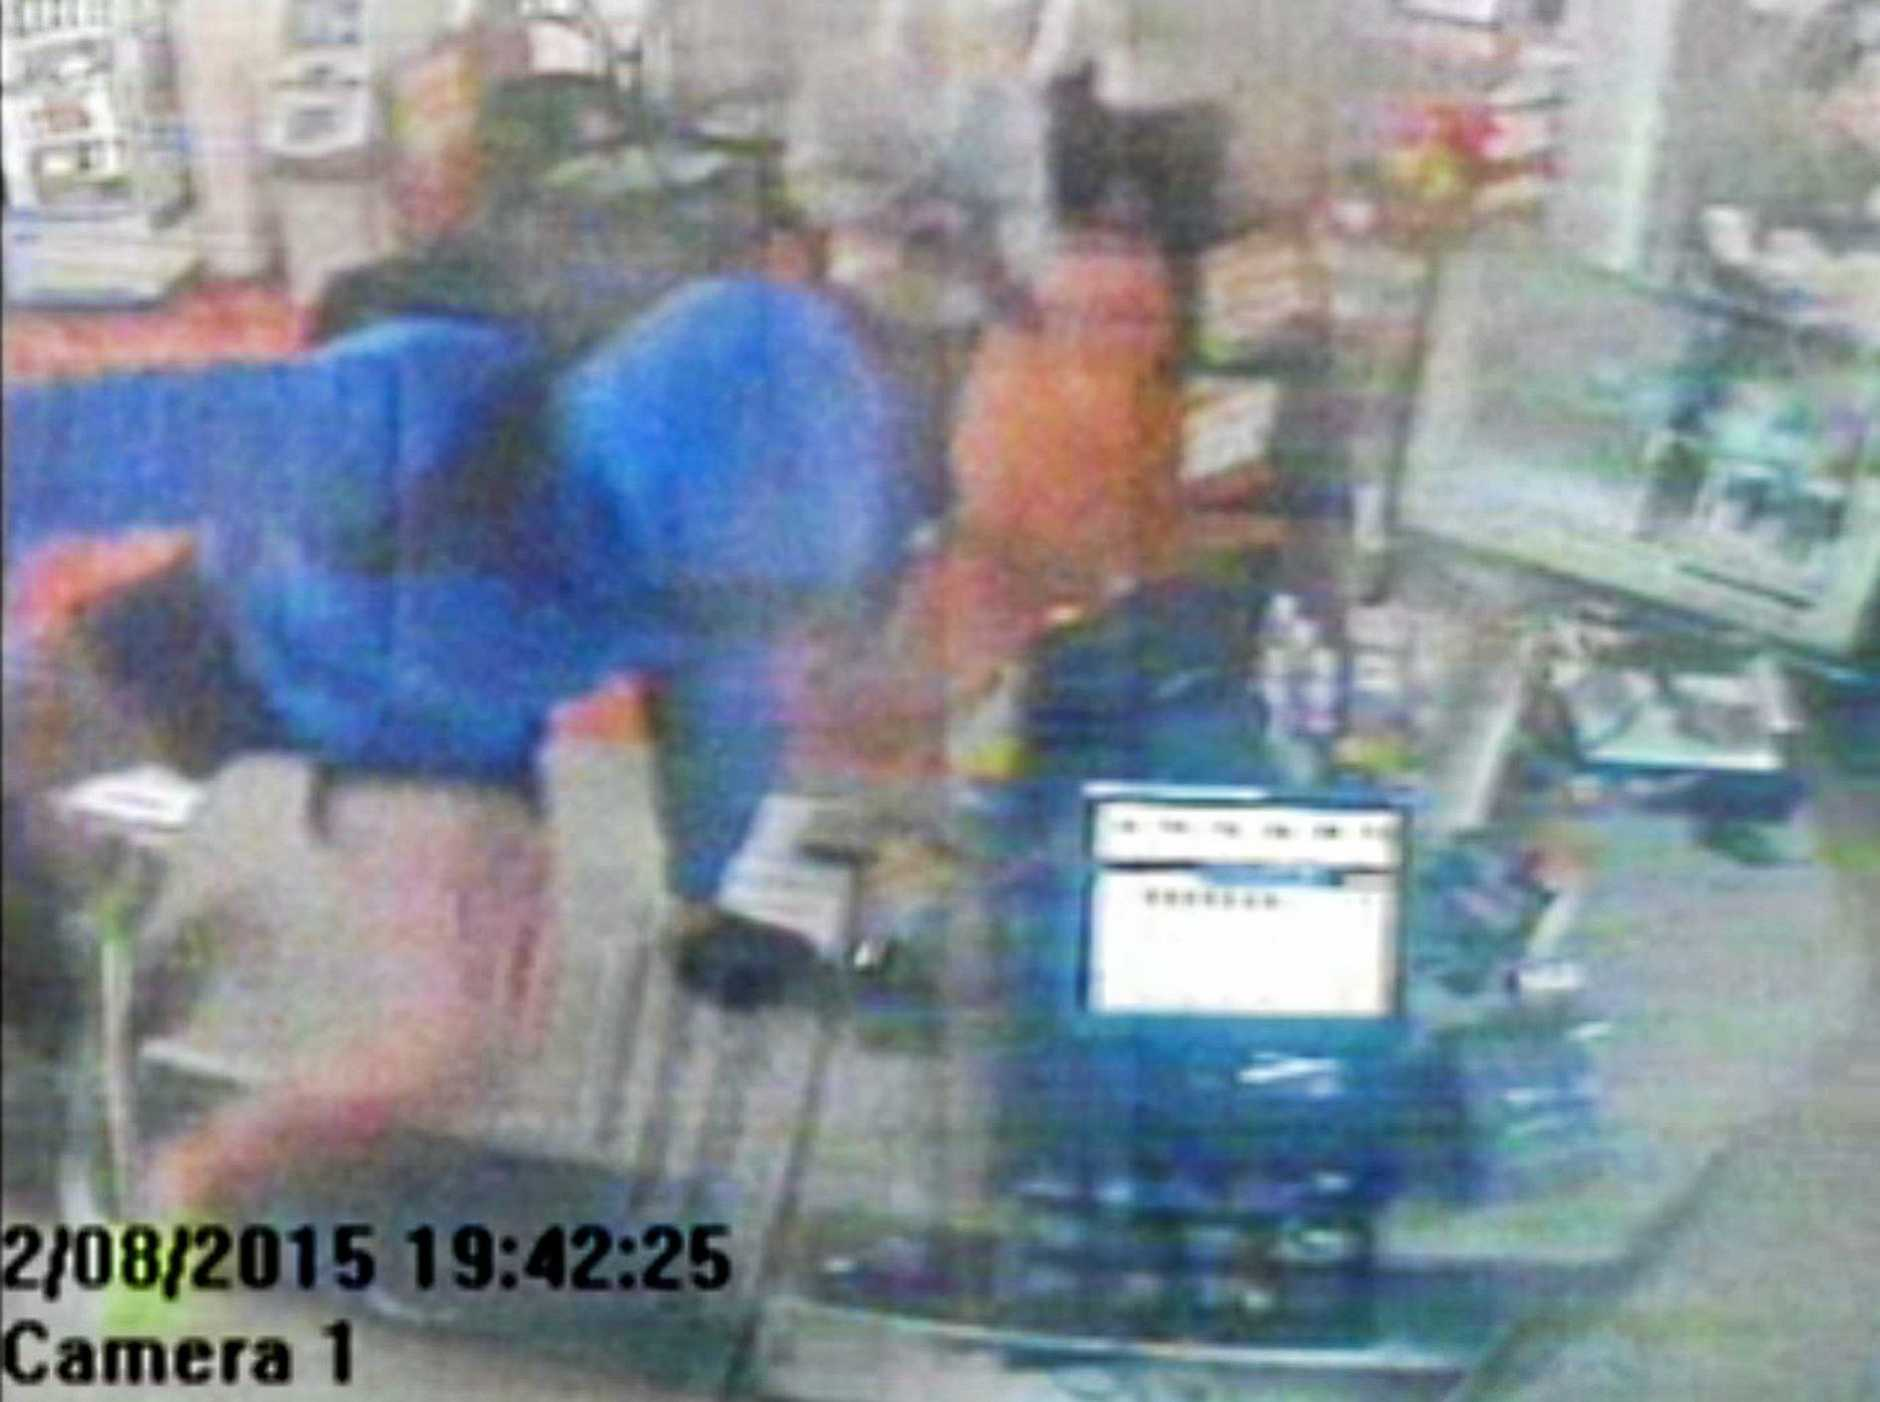 Stills from CCTV during the armed robbery.